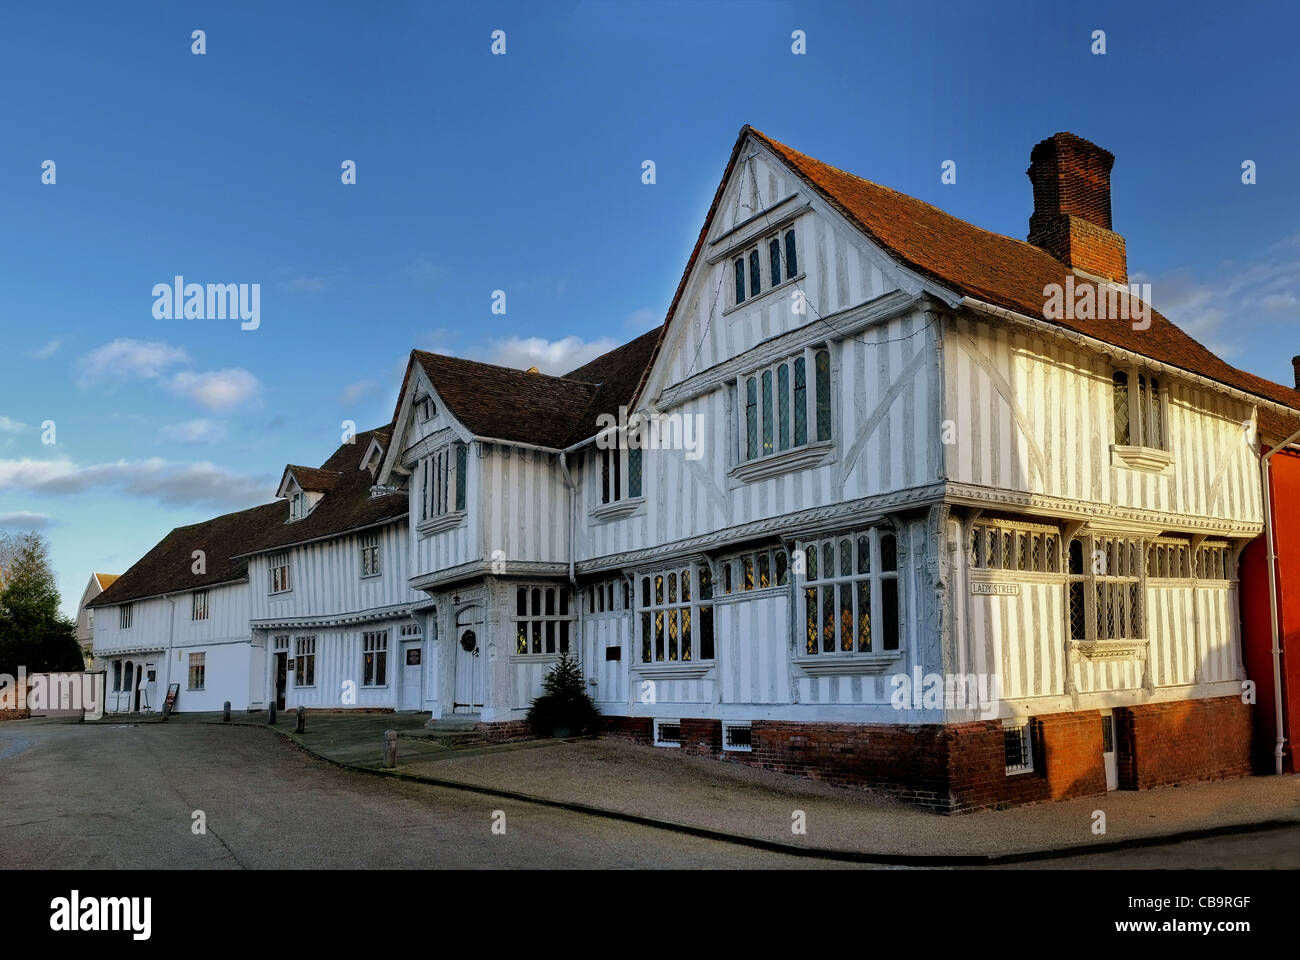 The Guildhall of the wool guild of Corpus Christi, Market Square, Lavenham, Suffolk. - Stock Image